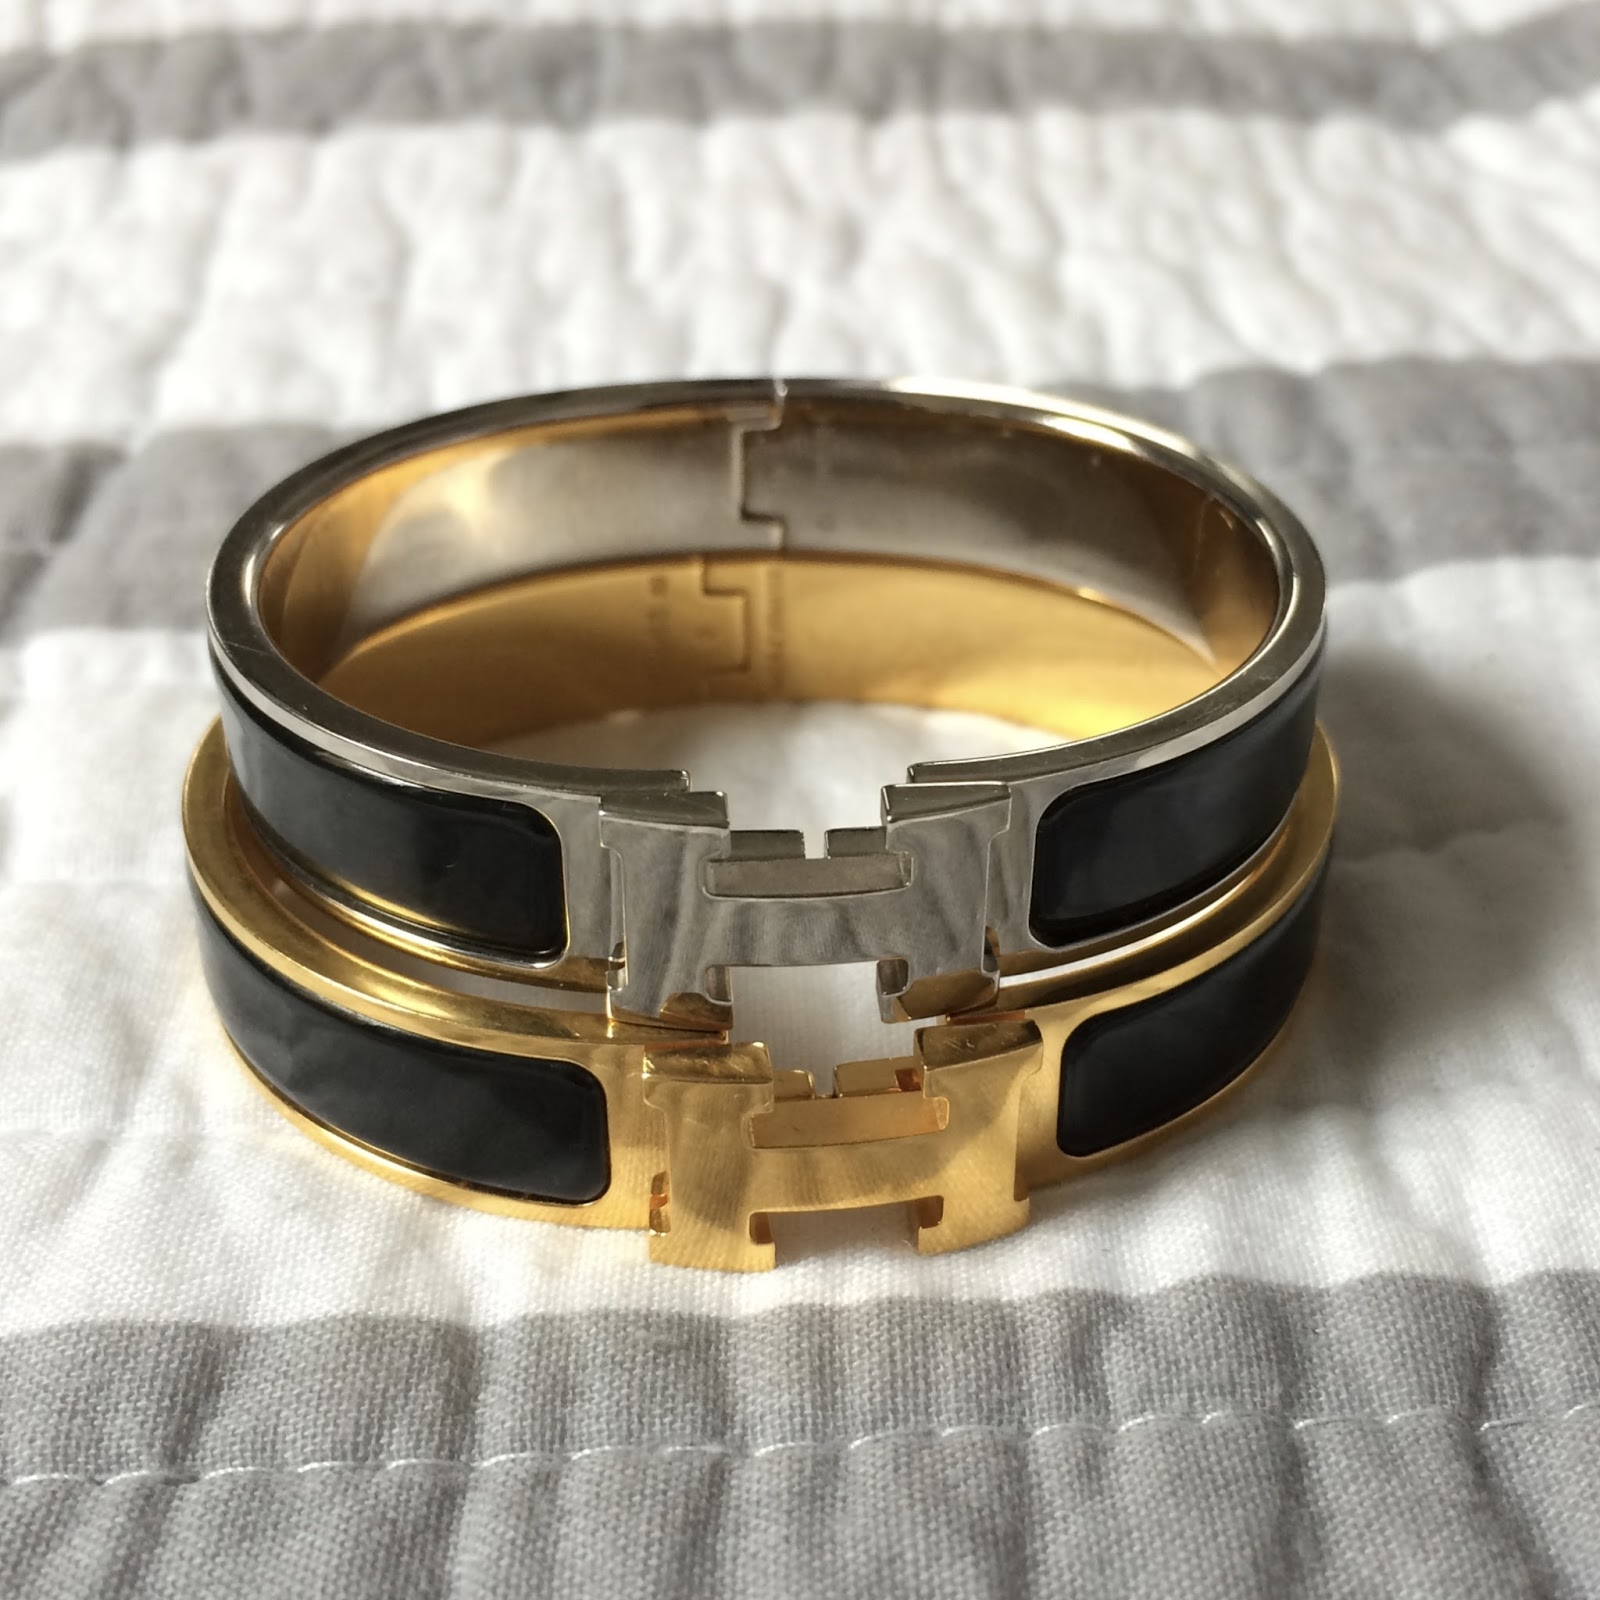 c46ff5f8794b I compare the Hermès Clic Clac H Bracelet in the PM size vs the Hermès Clic  Clac H Bracelet in the GM size in this post. Watch me try on these bracelets  ...